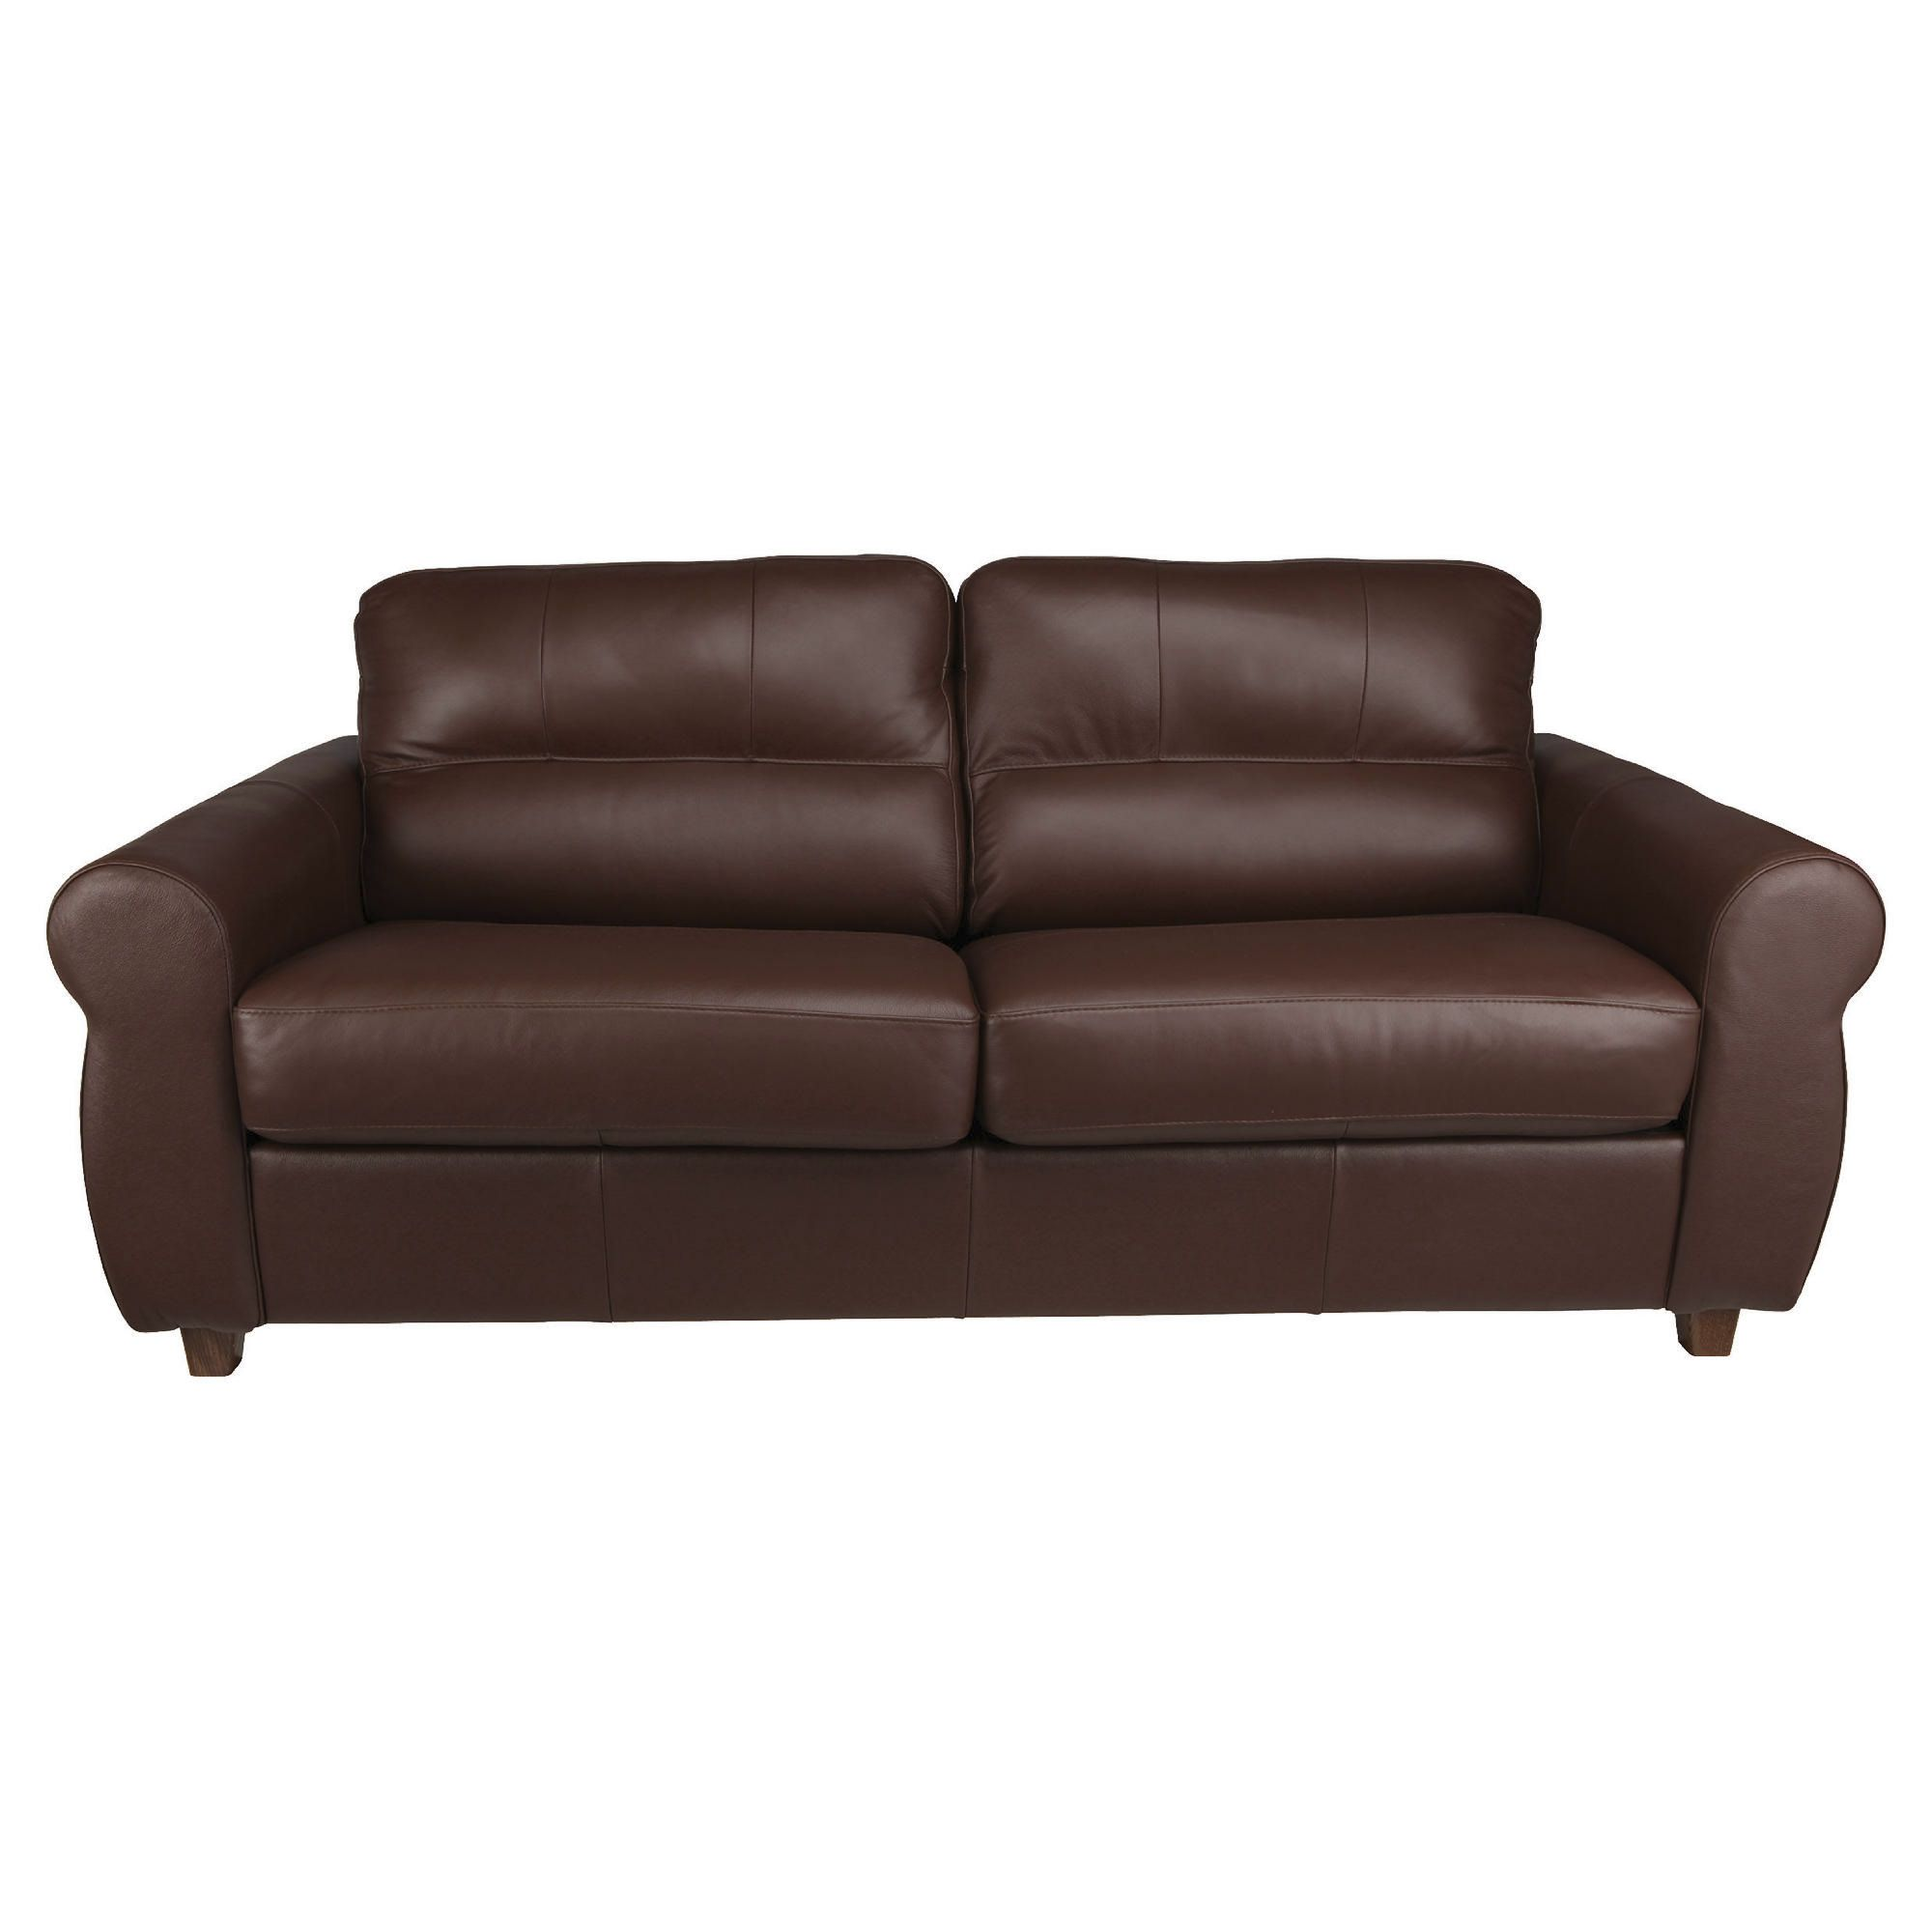 Fabio Leather Sofabed Cognac at Tesco Direct